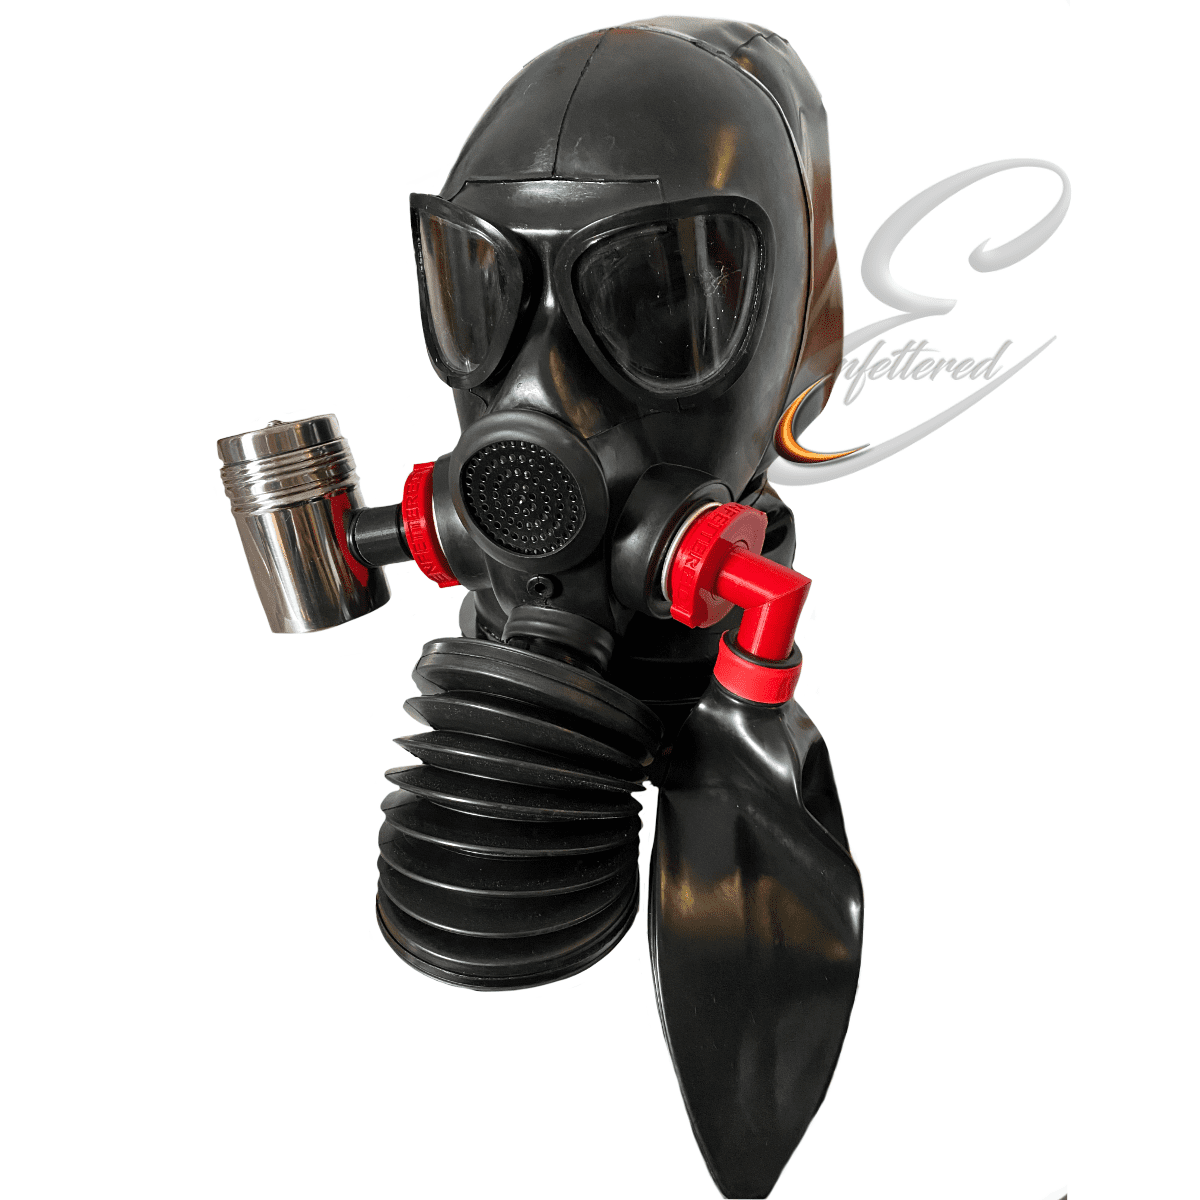 Enfettered Gas Mask Hood with Mini Aroma System & Bellows